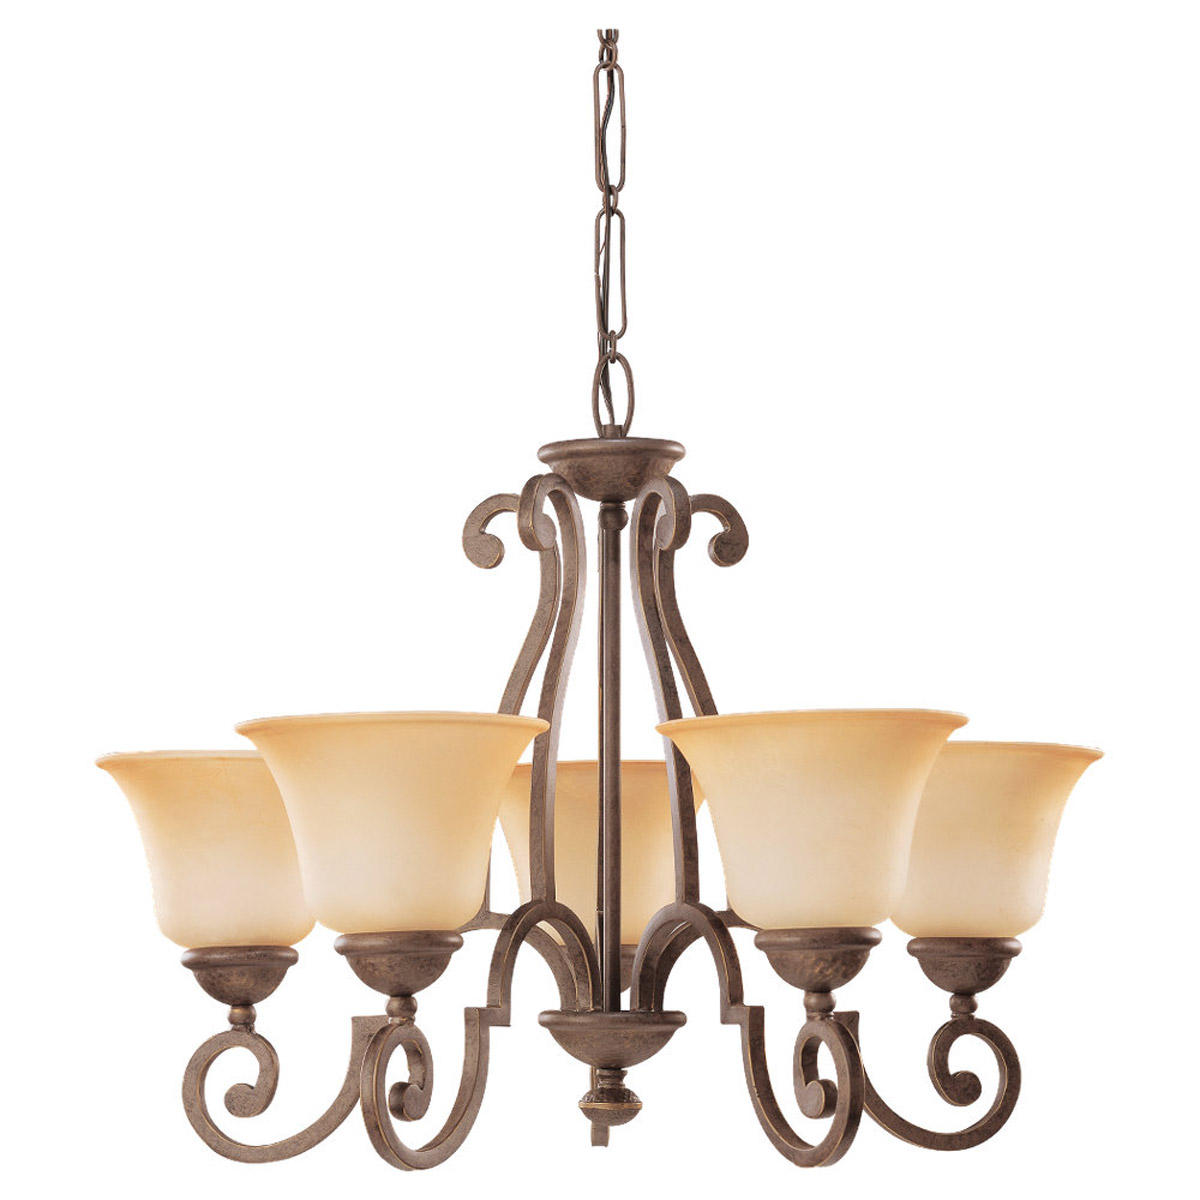 Sea Gull Lighting Brandywine 5 Light Chandelier in Antique Bronze 31431-71 photo